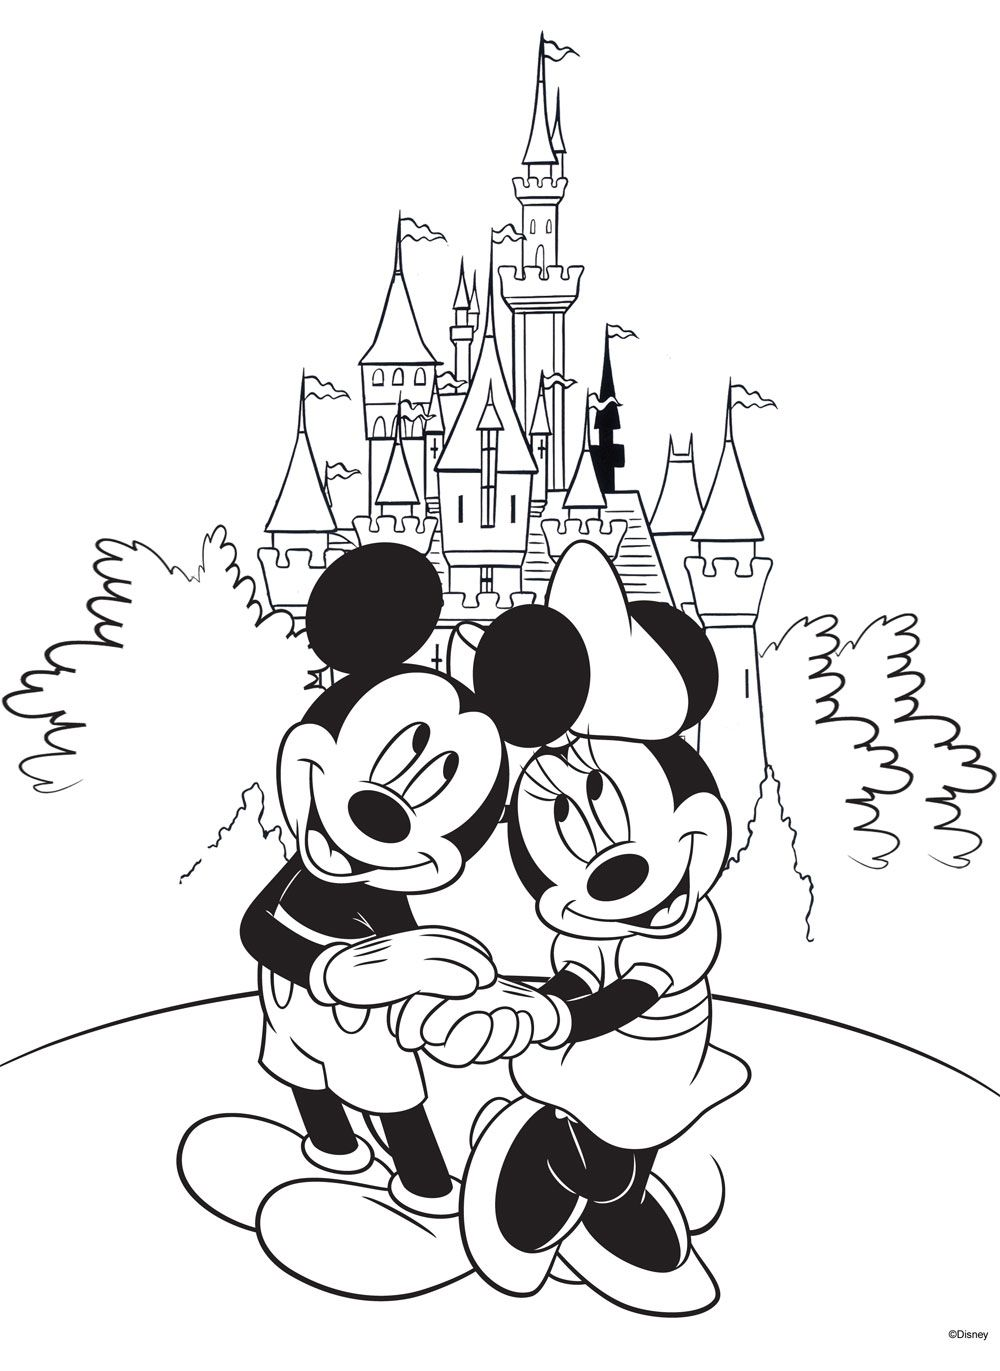 Free Disney Coloring Page! #Printable | Disney coloring ... | free printable online coloring pages disney characters